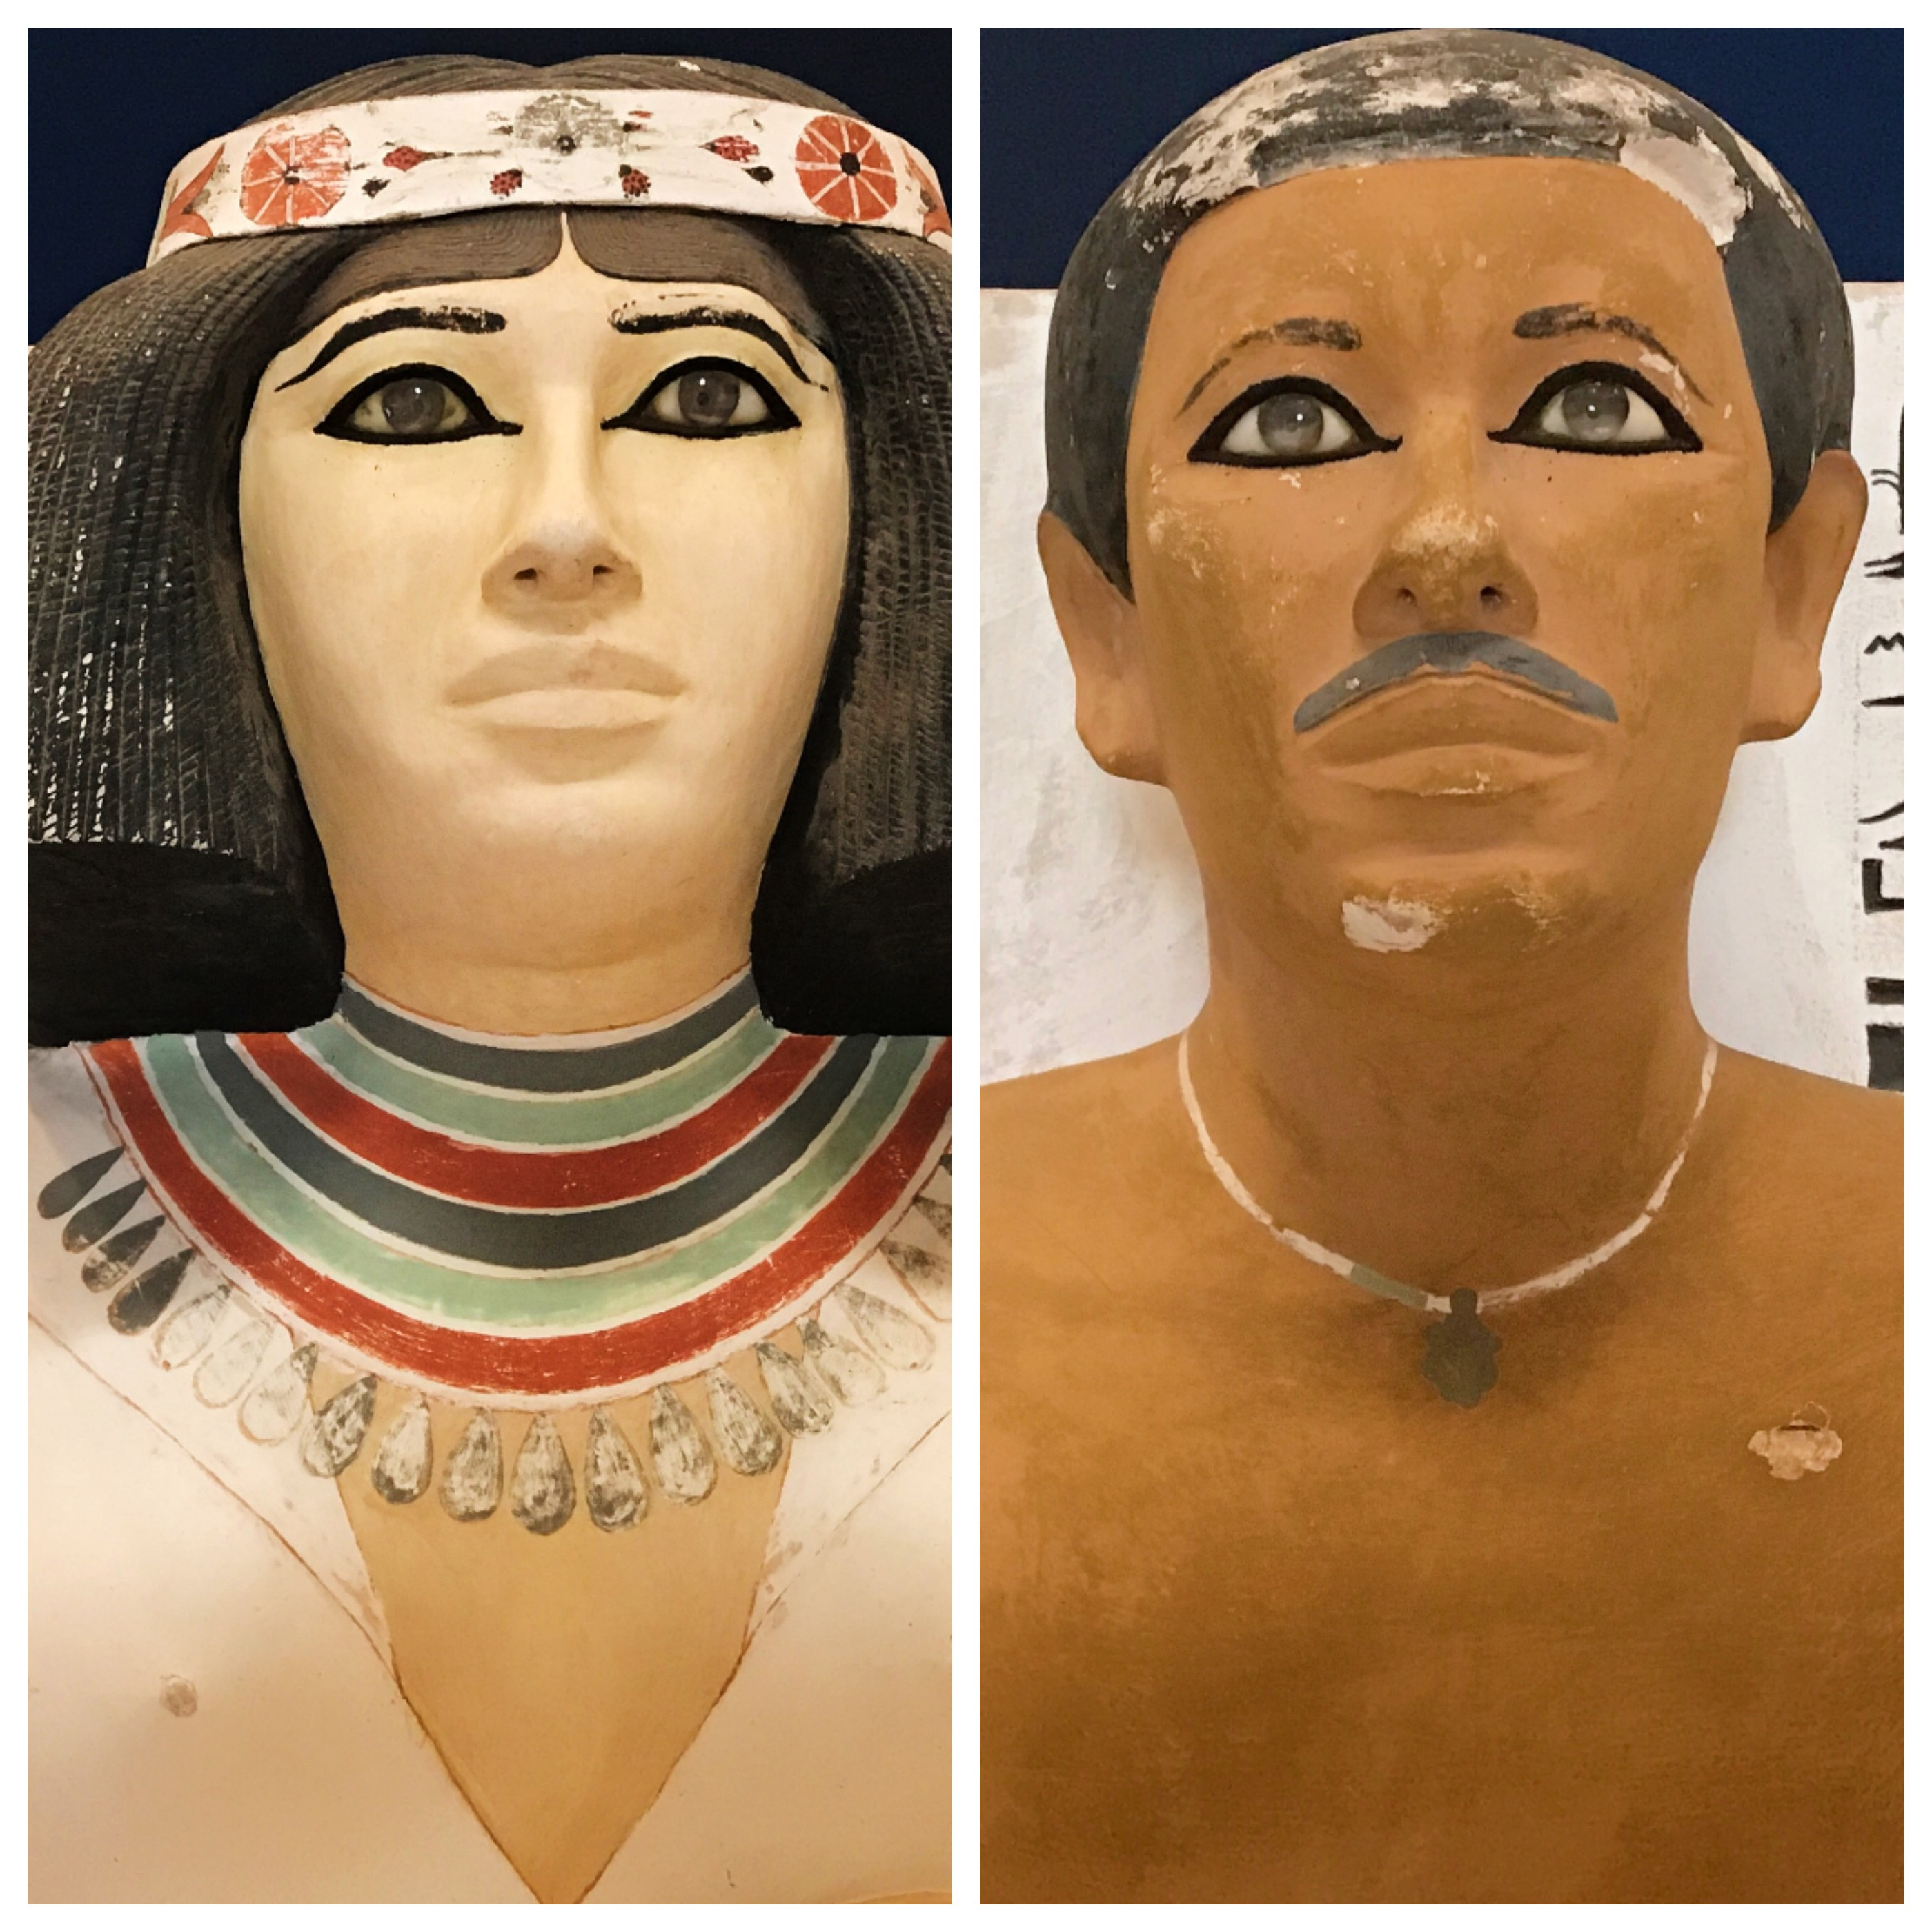 The Statues in Egypt Used to Have Eyeballs - A Philosopher's